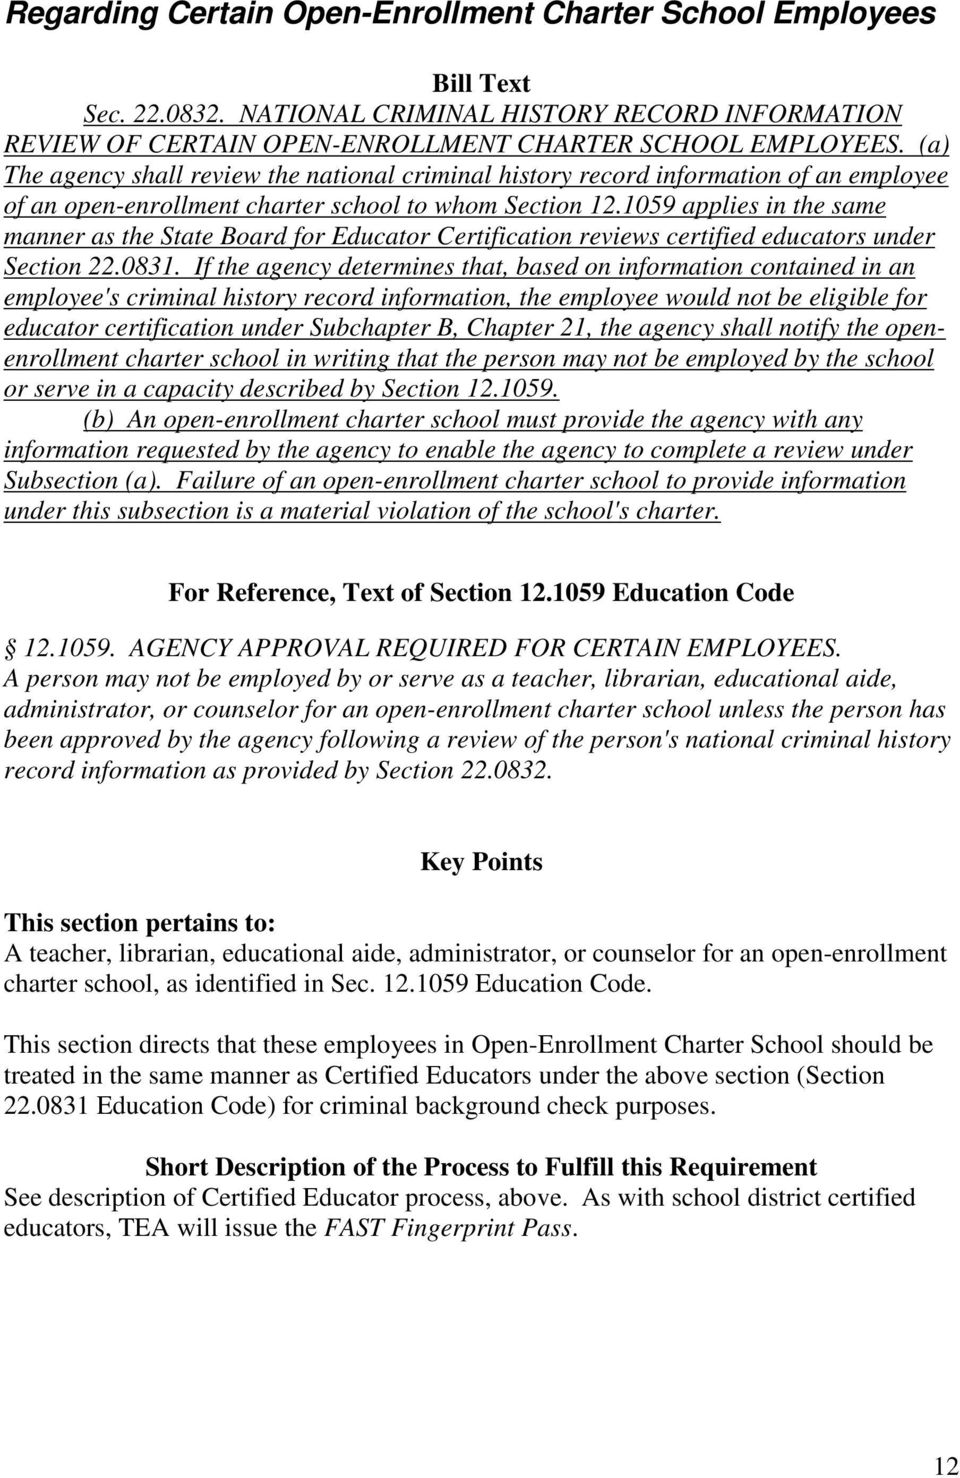 1059 applies in the same manner as the State Board for Educator Certification reviews certified educators under Section 22.0831.